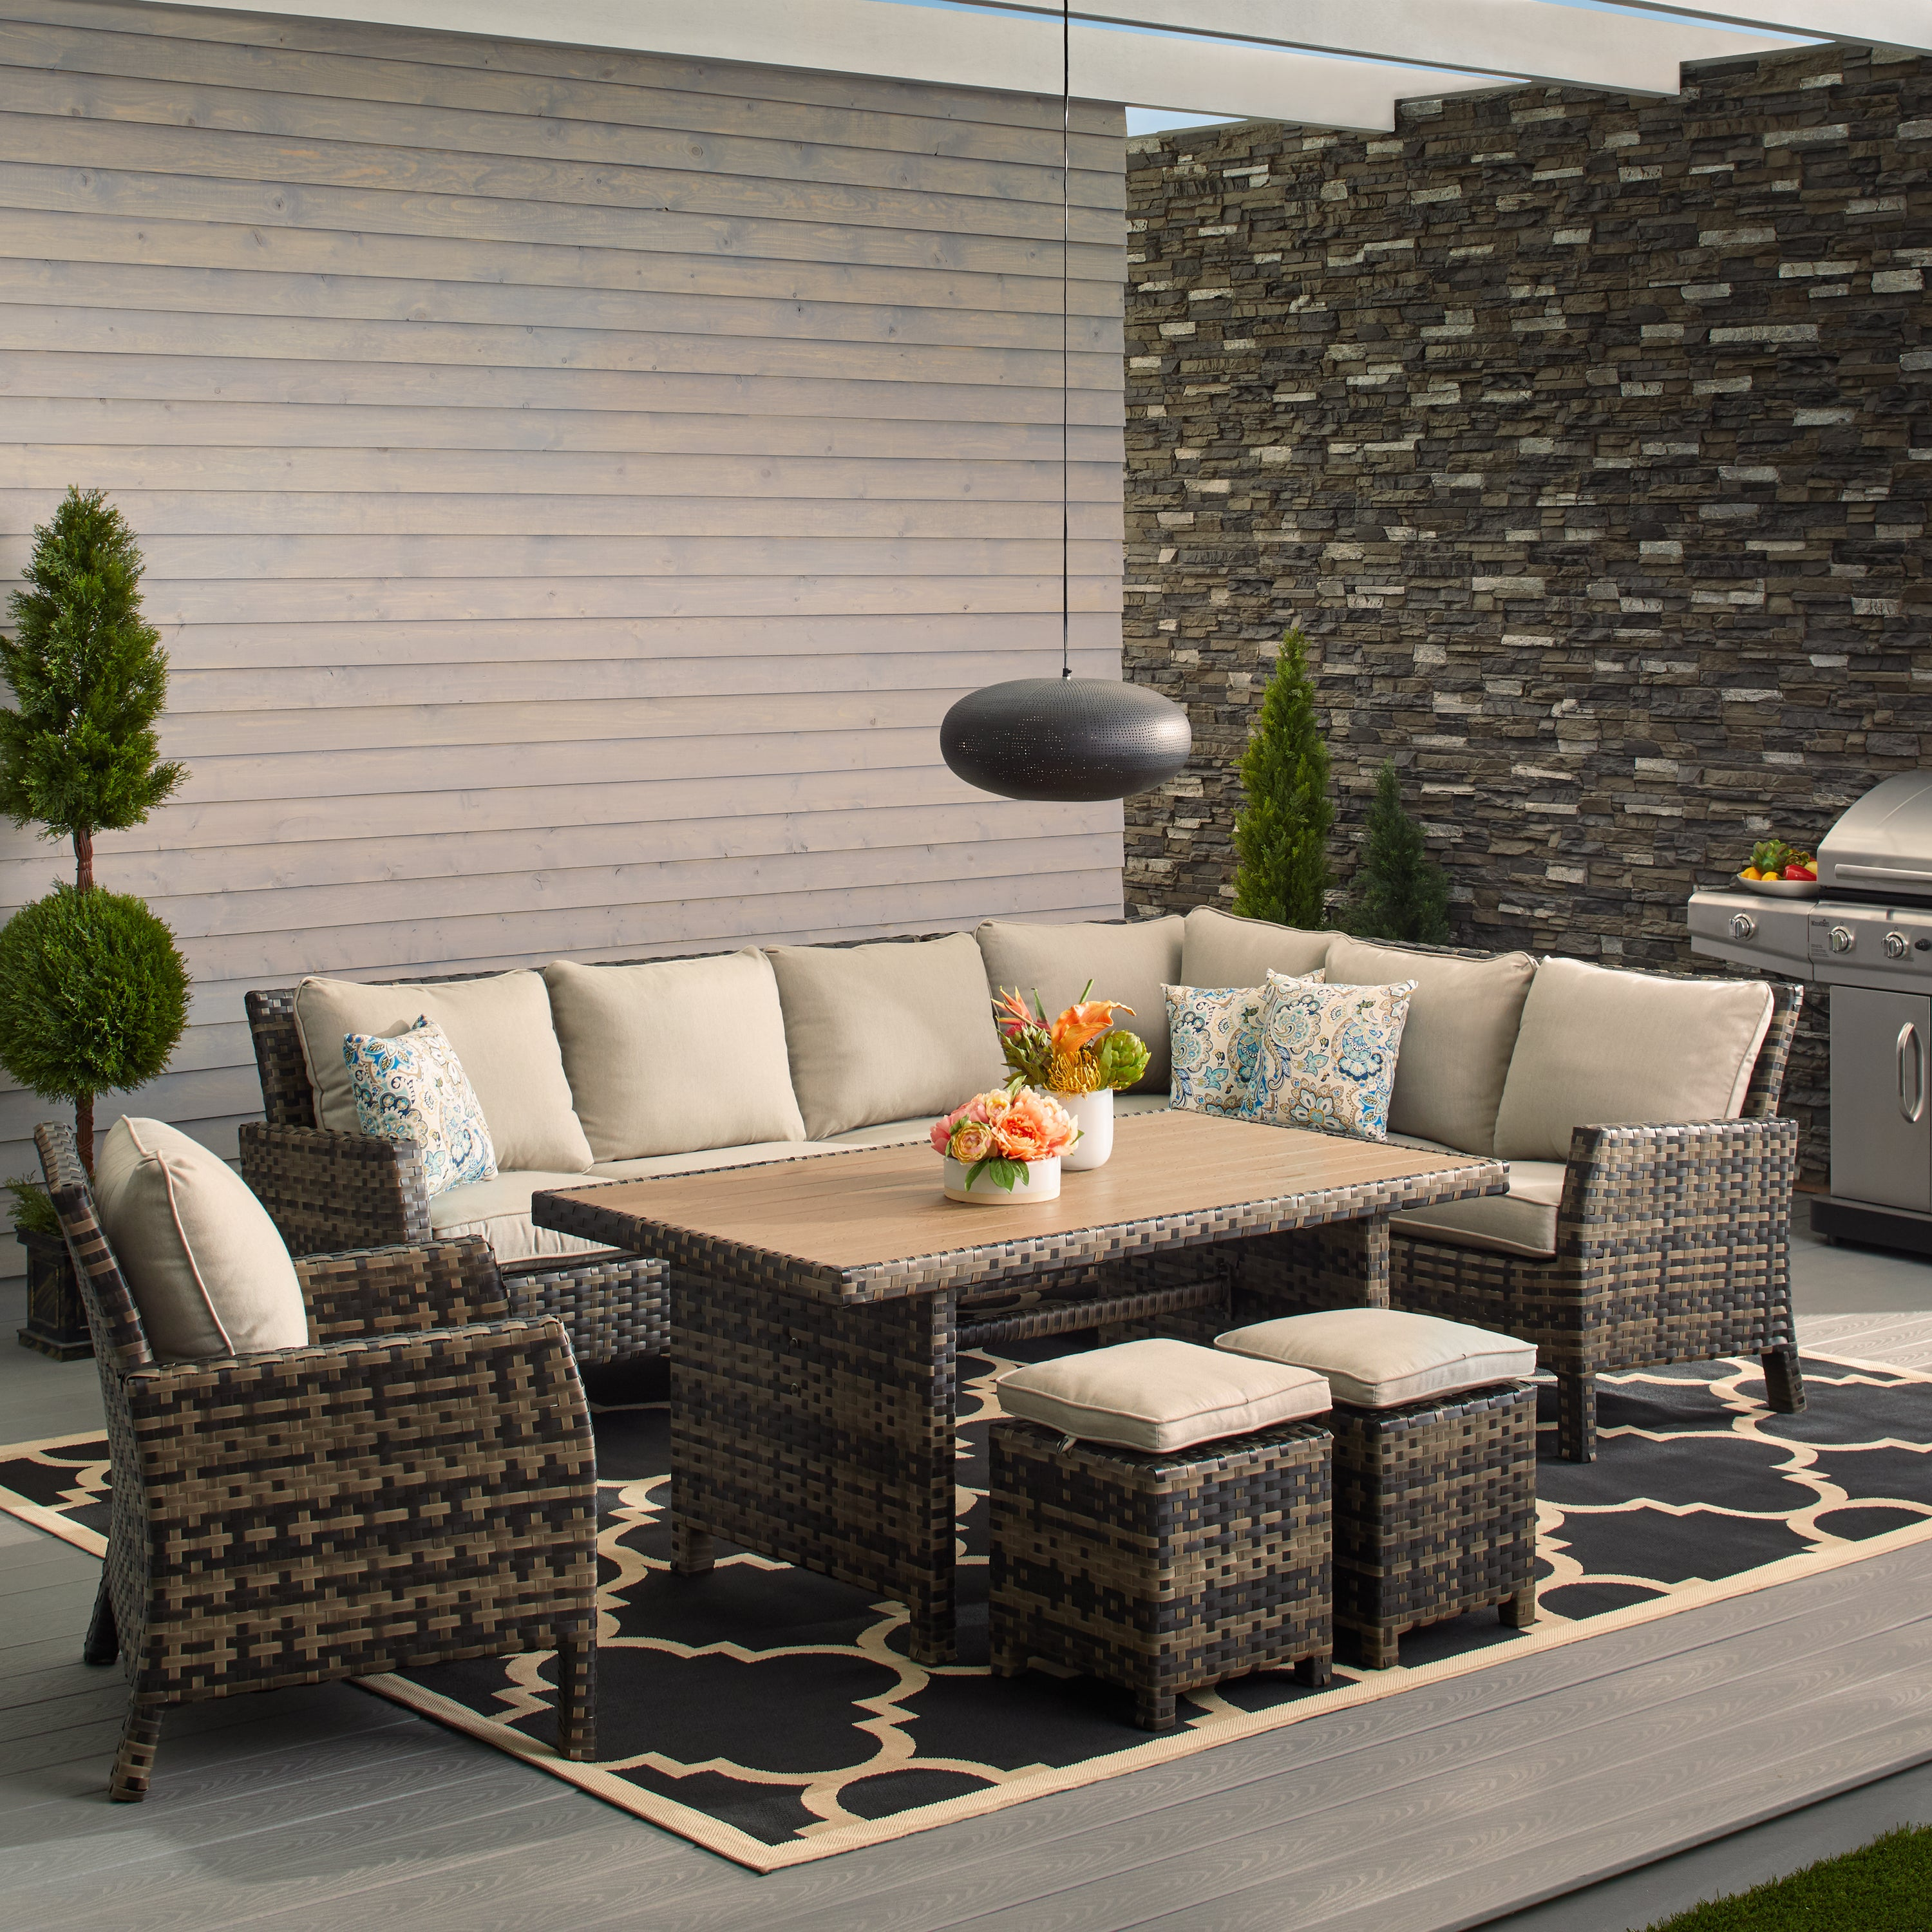 Buy outdoor dining sets online at overstock com our best patio furniture deals